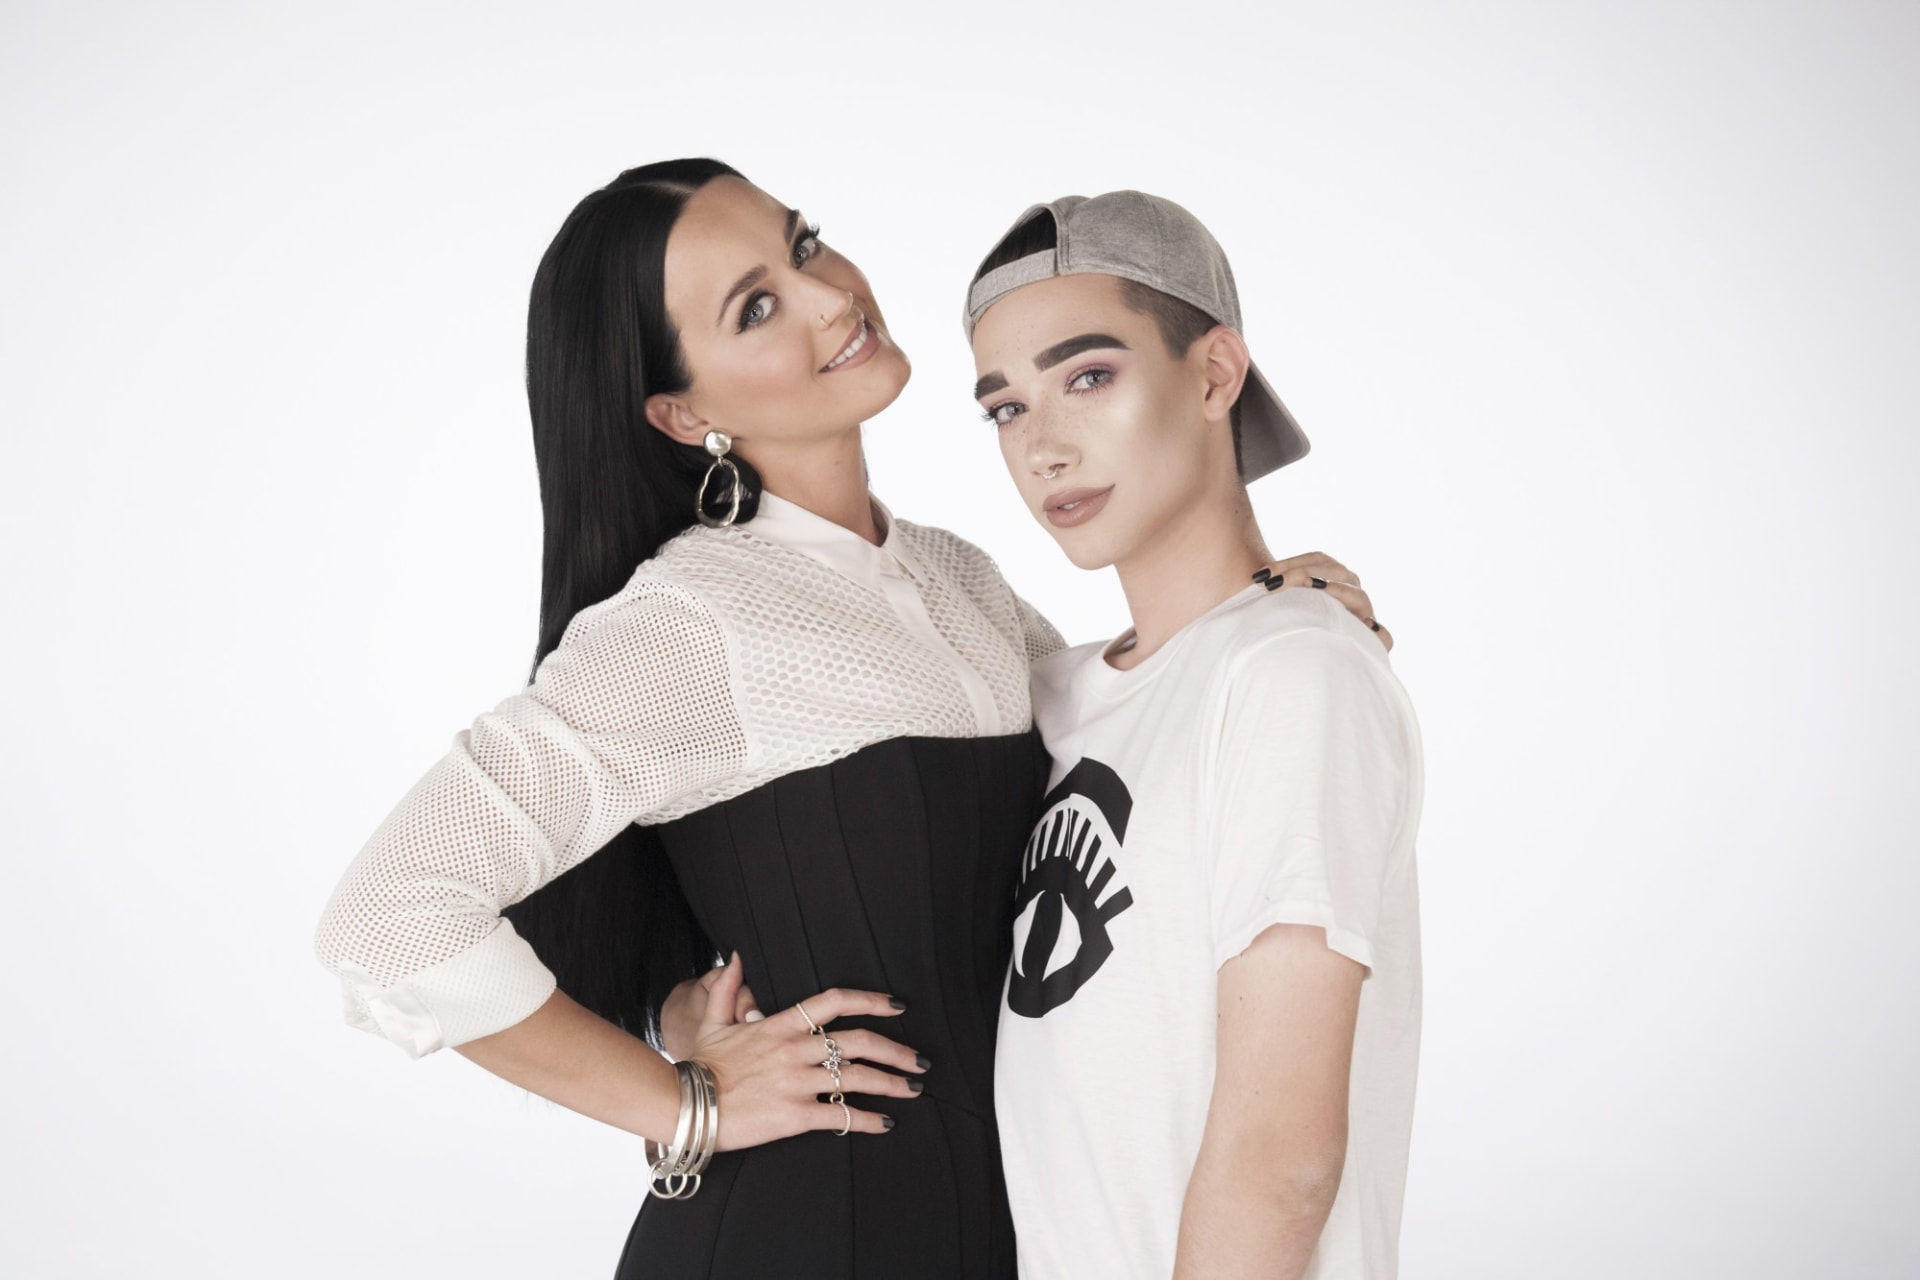 Covergirl katy perry and james charles